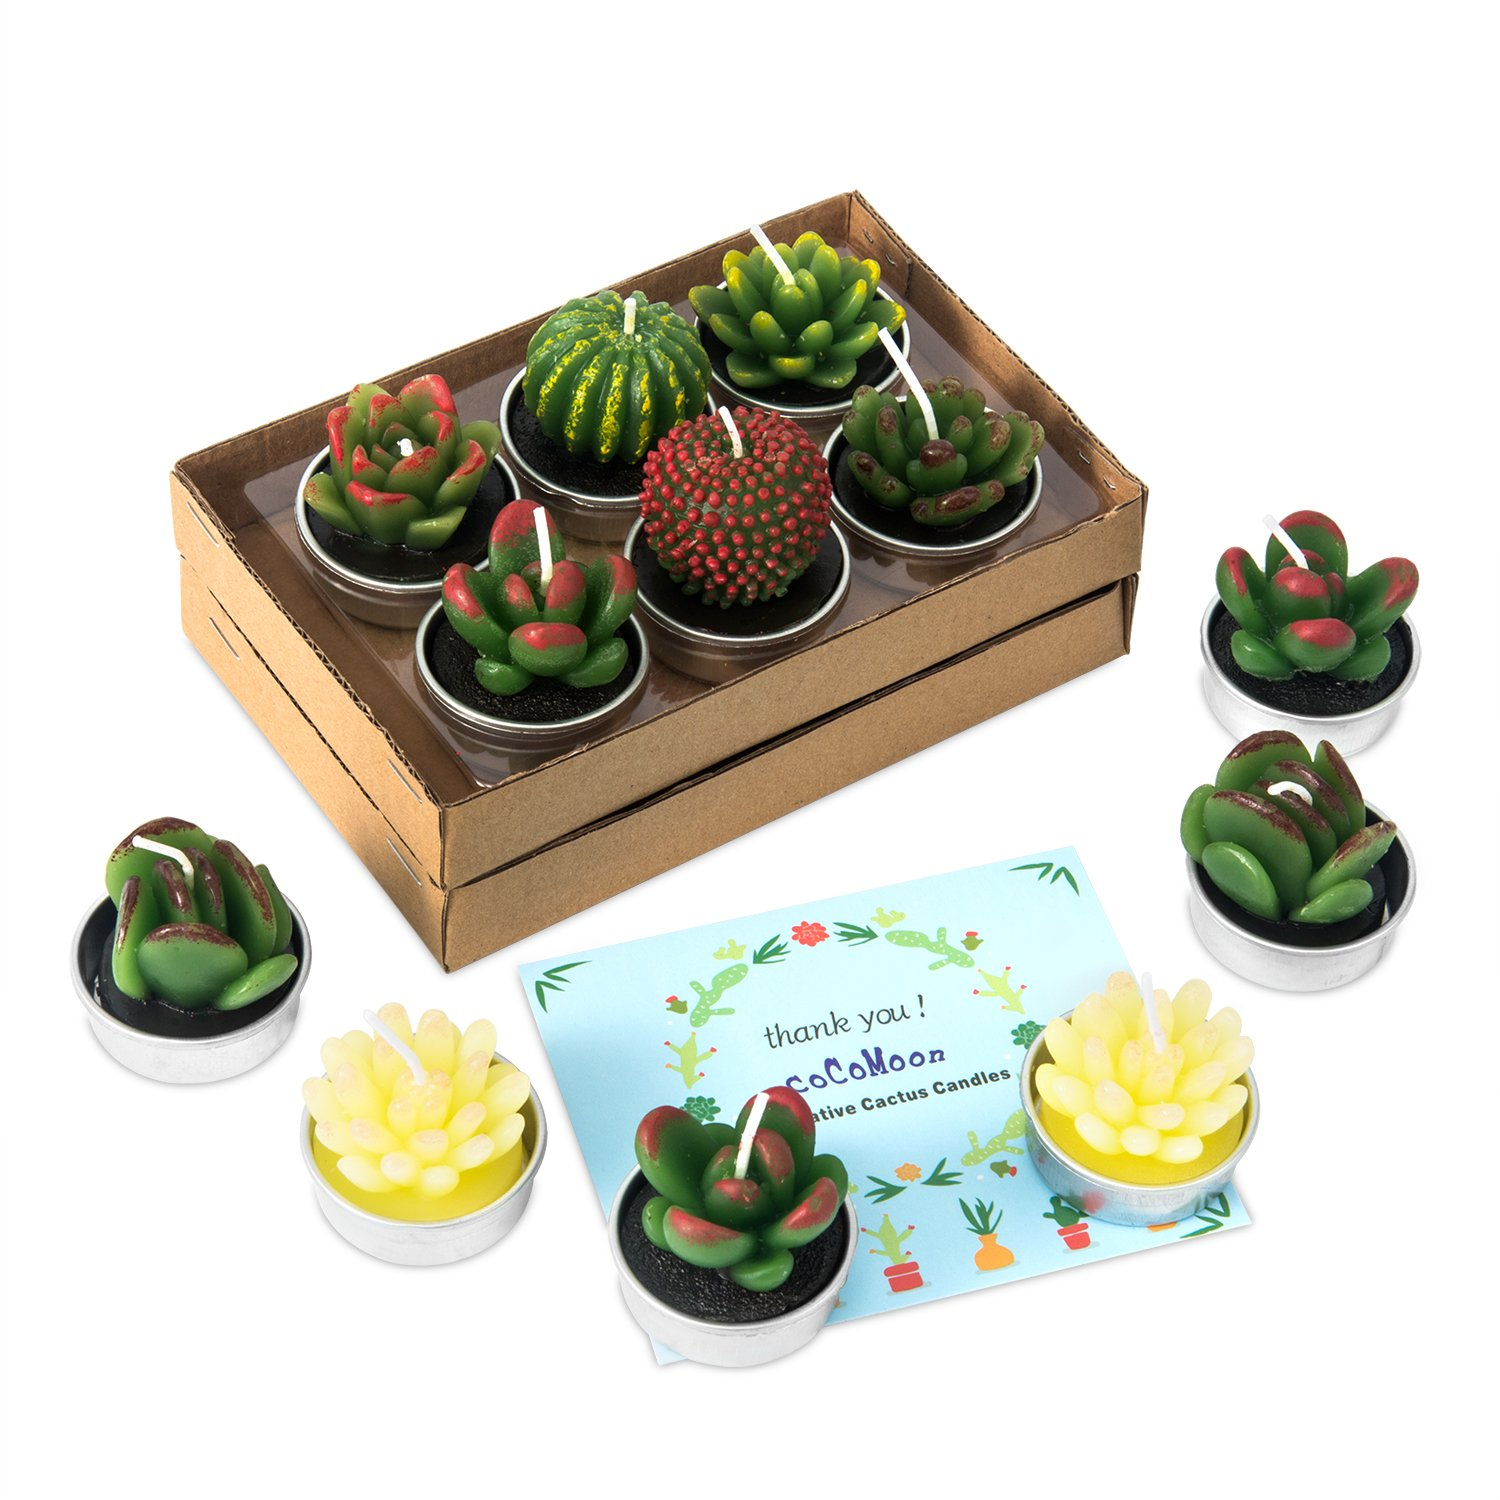 Glarks 12-Pieces Handmade Delicate Succulent Cactus Artificial Succulents Tealight Candles Perfect for Birthday Party Valentines Day Wedding Spa Home Decor and DIY Gift